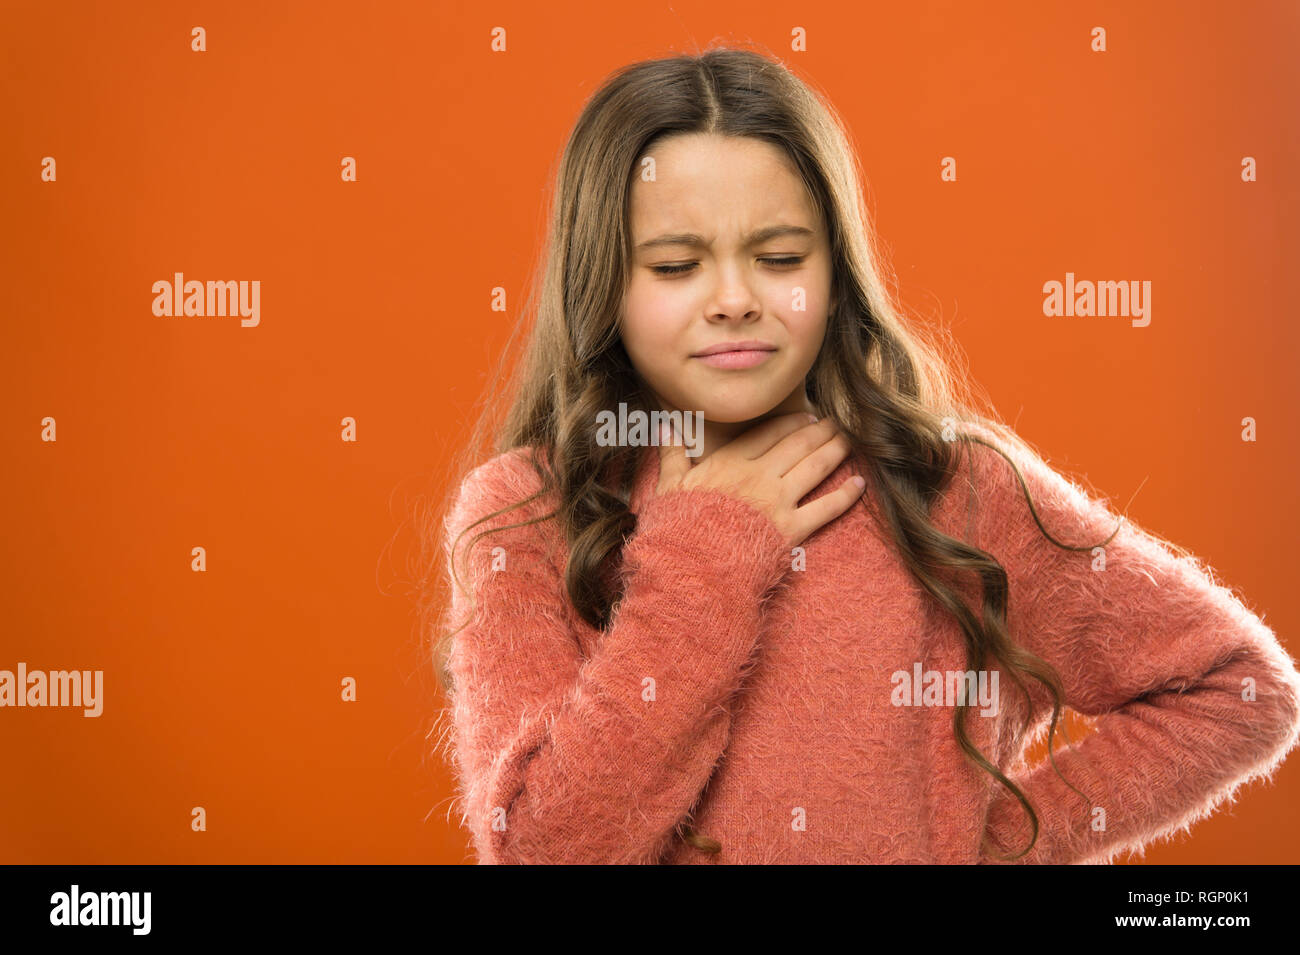 Lost her voice. Sore throat quick remedies. Kid feel pain in throat. Suffer from pain neck. Girl painful face orange background. Health care and medicine. Sore throat remedies. Throat pain treatment. - Stock Image